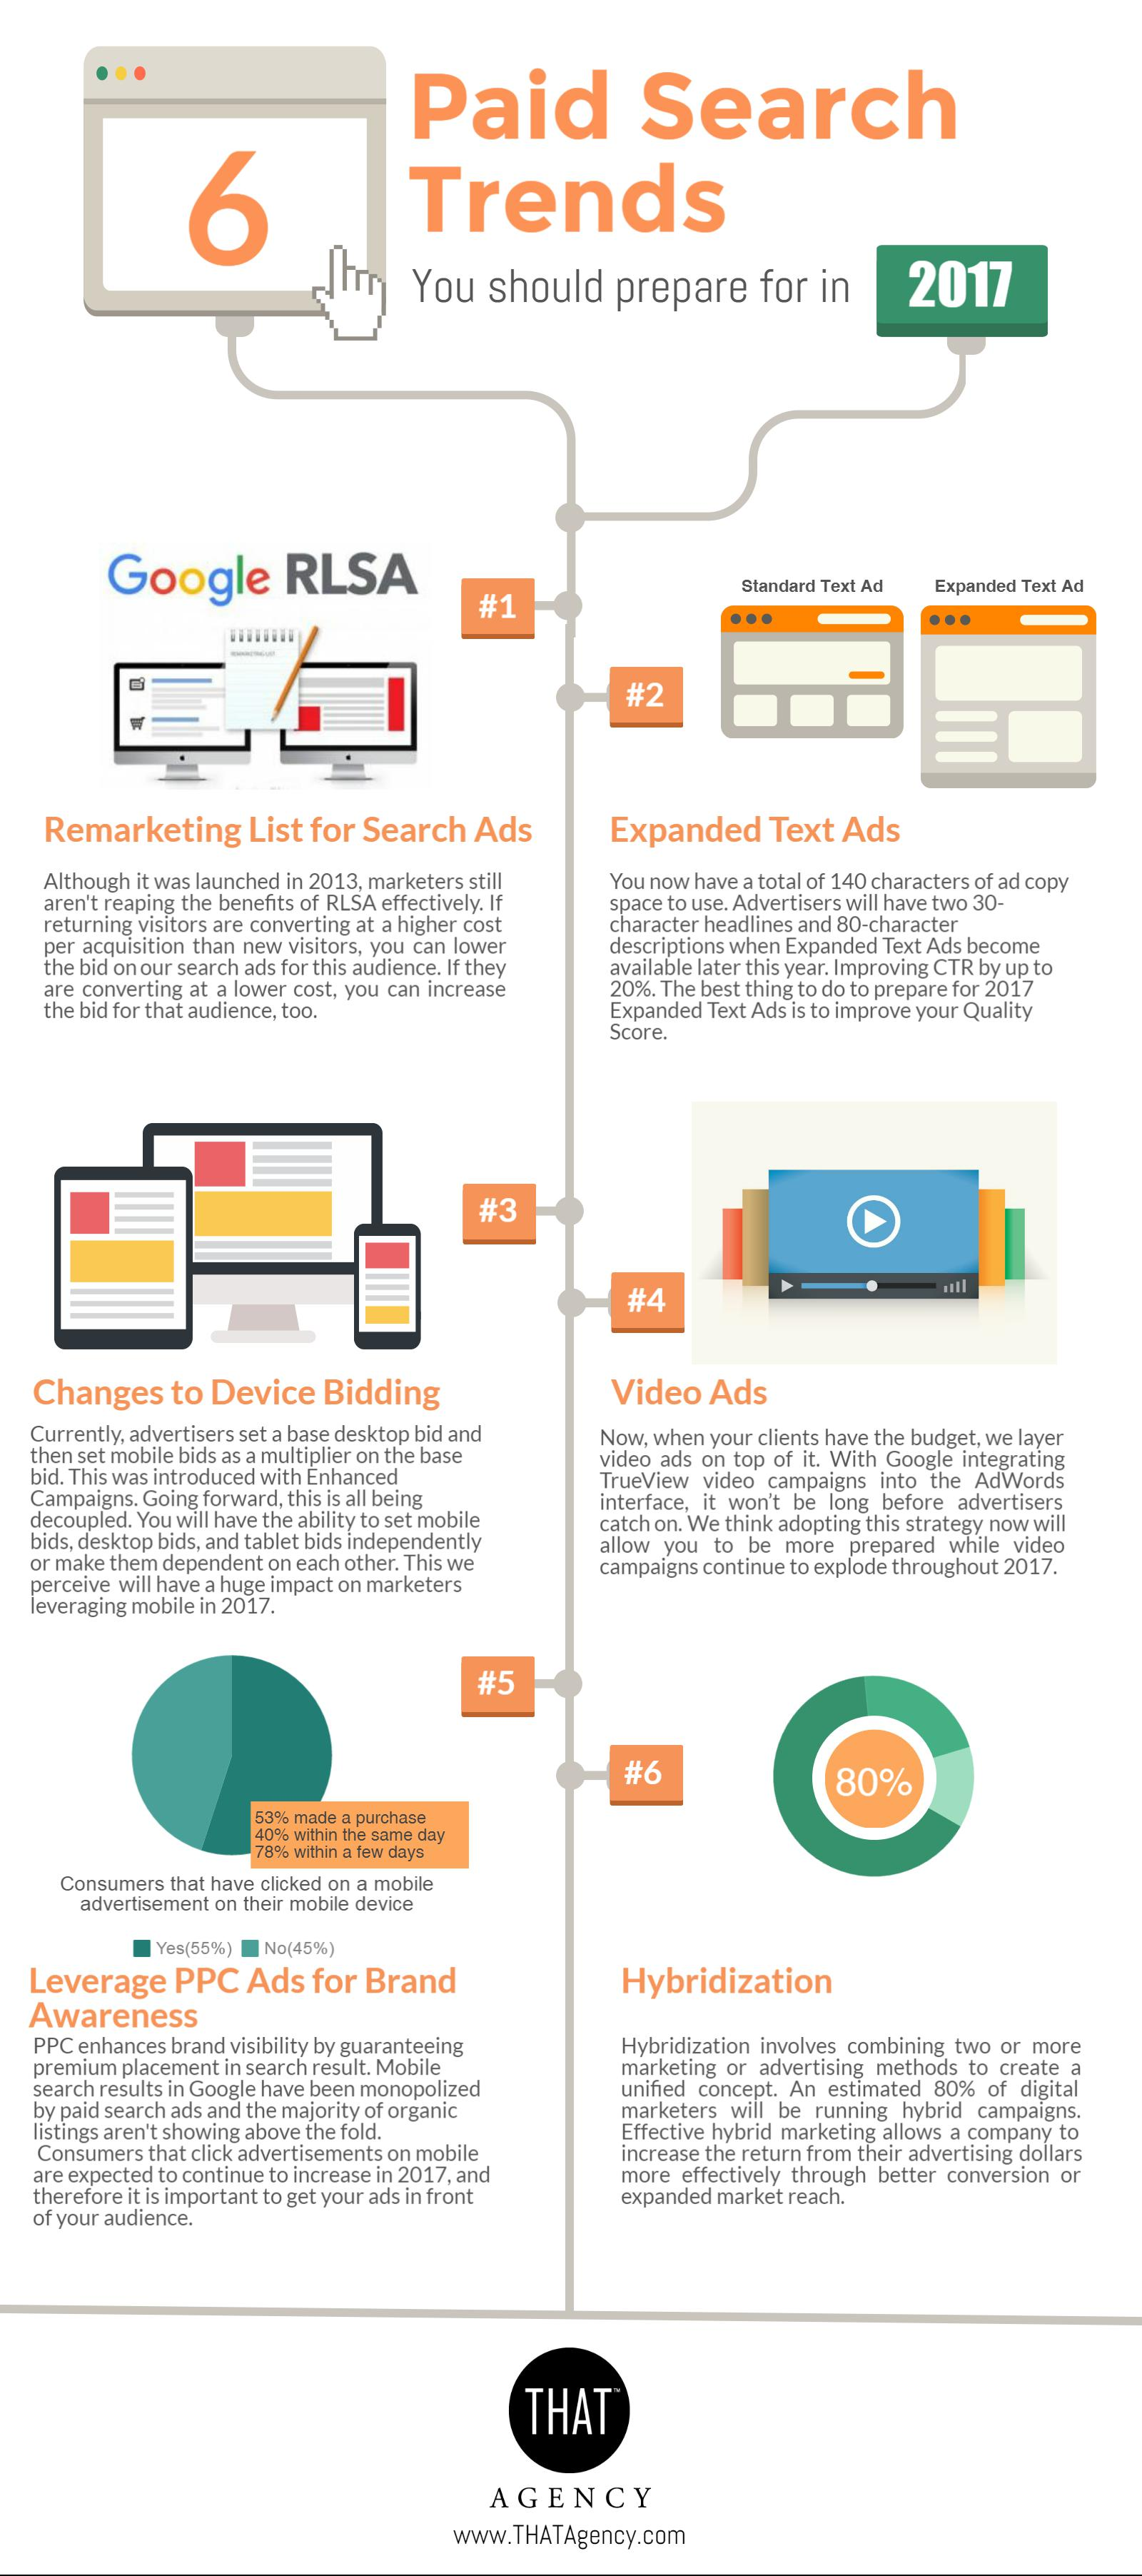 2017 Paid Search Trends (Info-graphic)